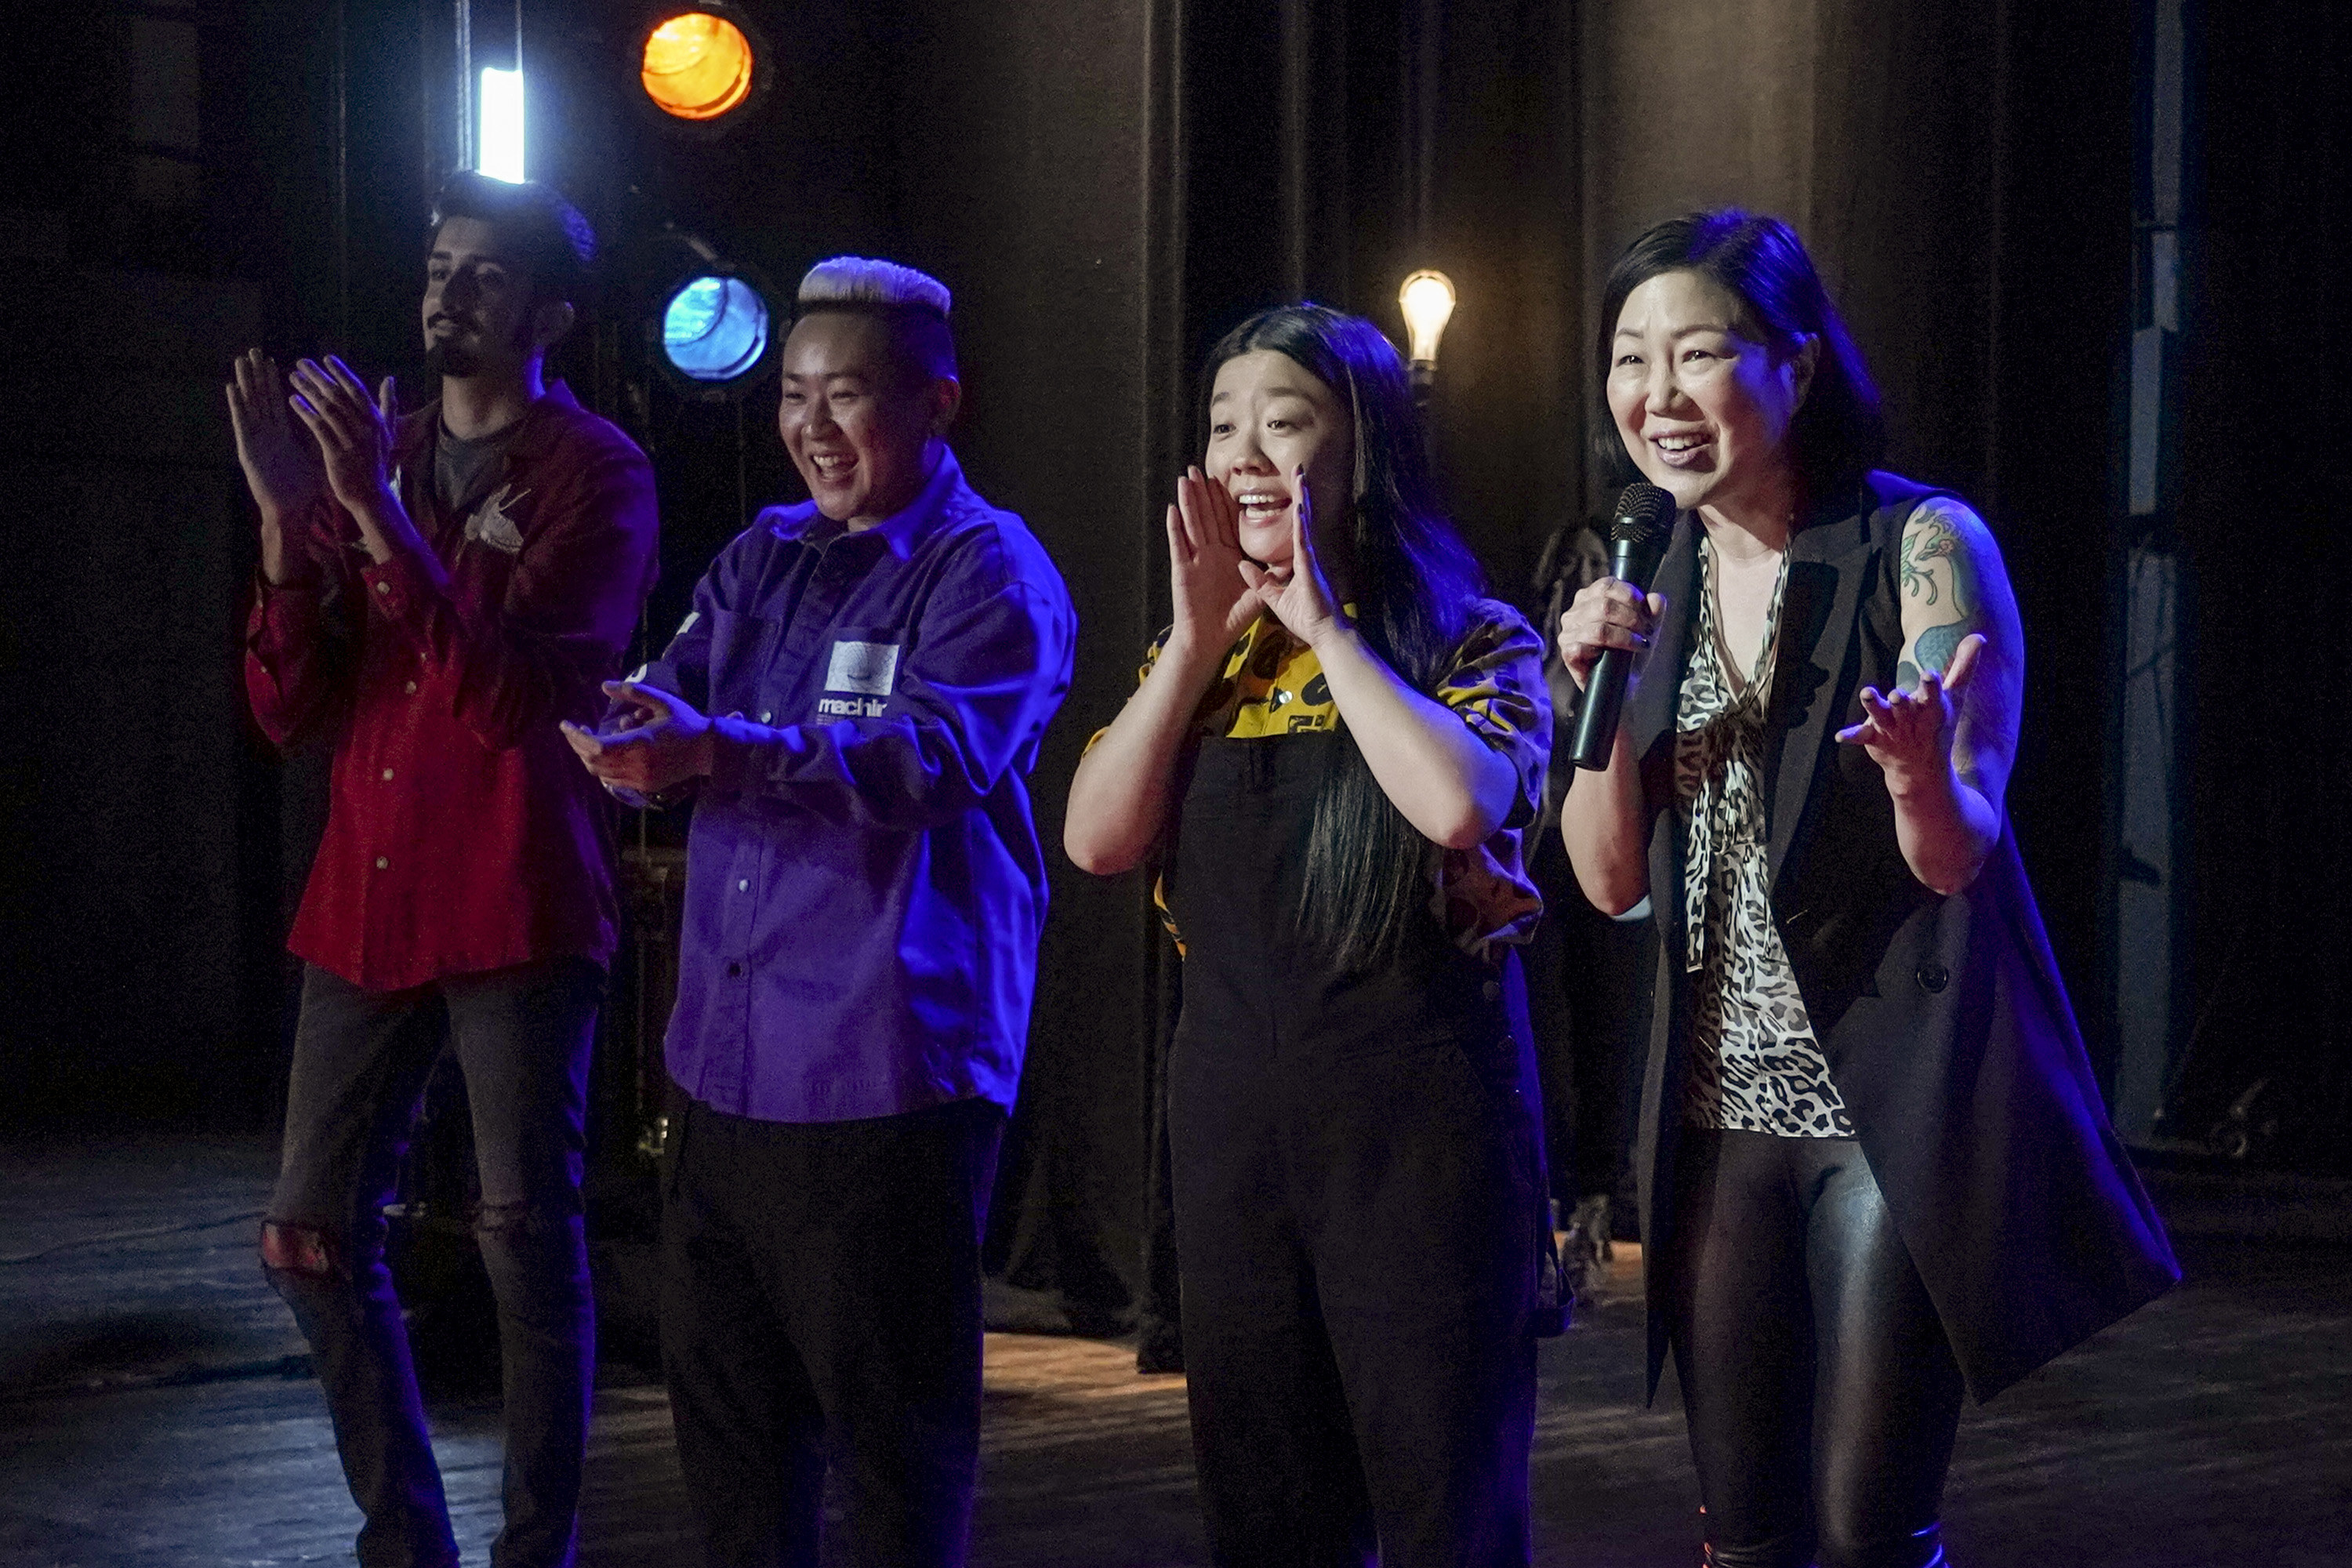 Alice and Margaret Cho on stage at their comedy show